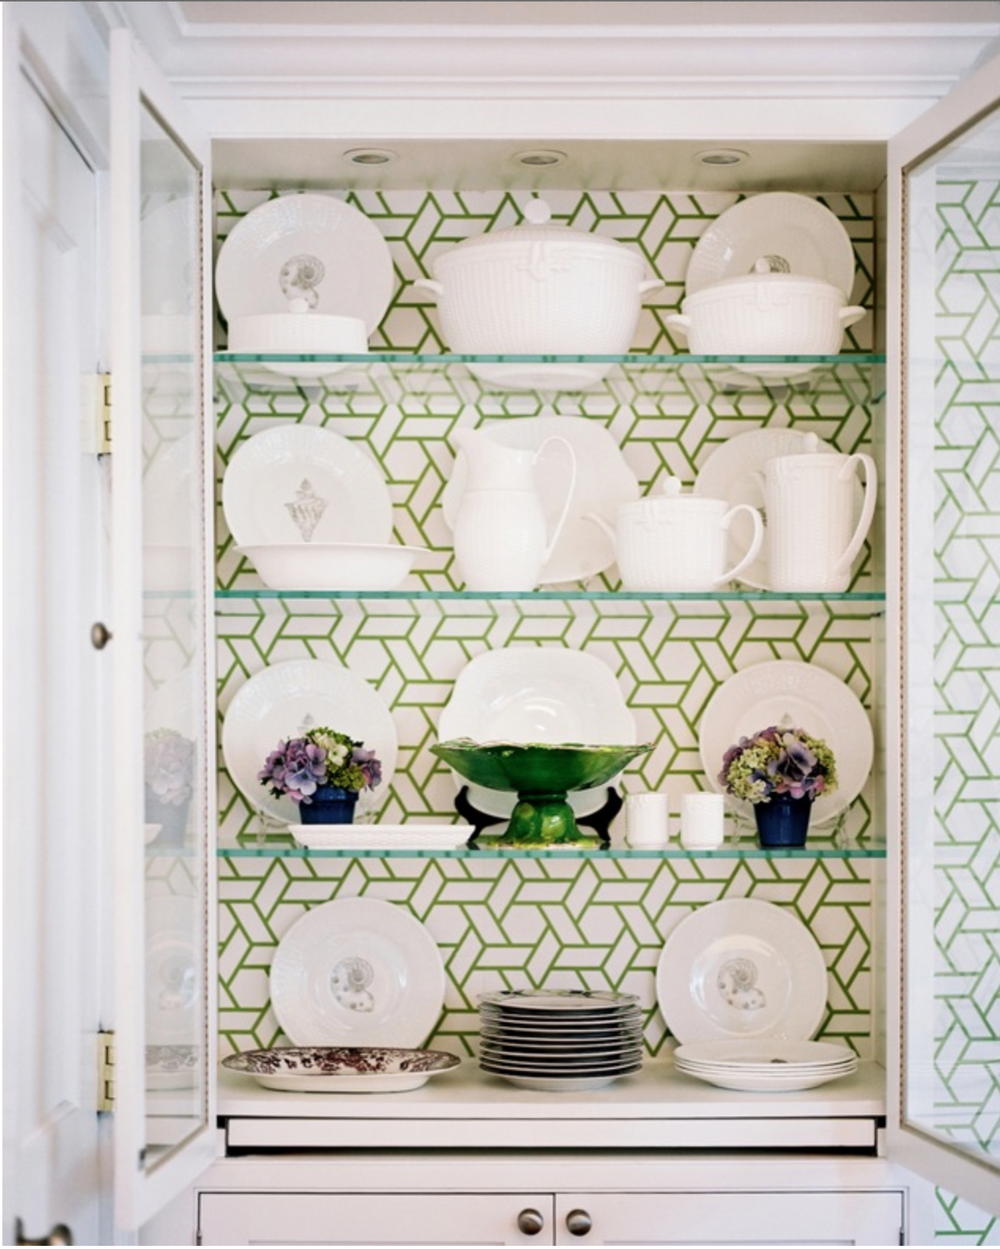 This patterned green and white wallpaper really elevates this china cabinet and makes this classic white china sparkle.  {Via Pinterest}